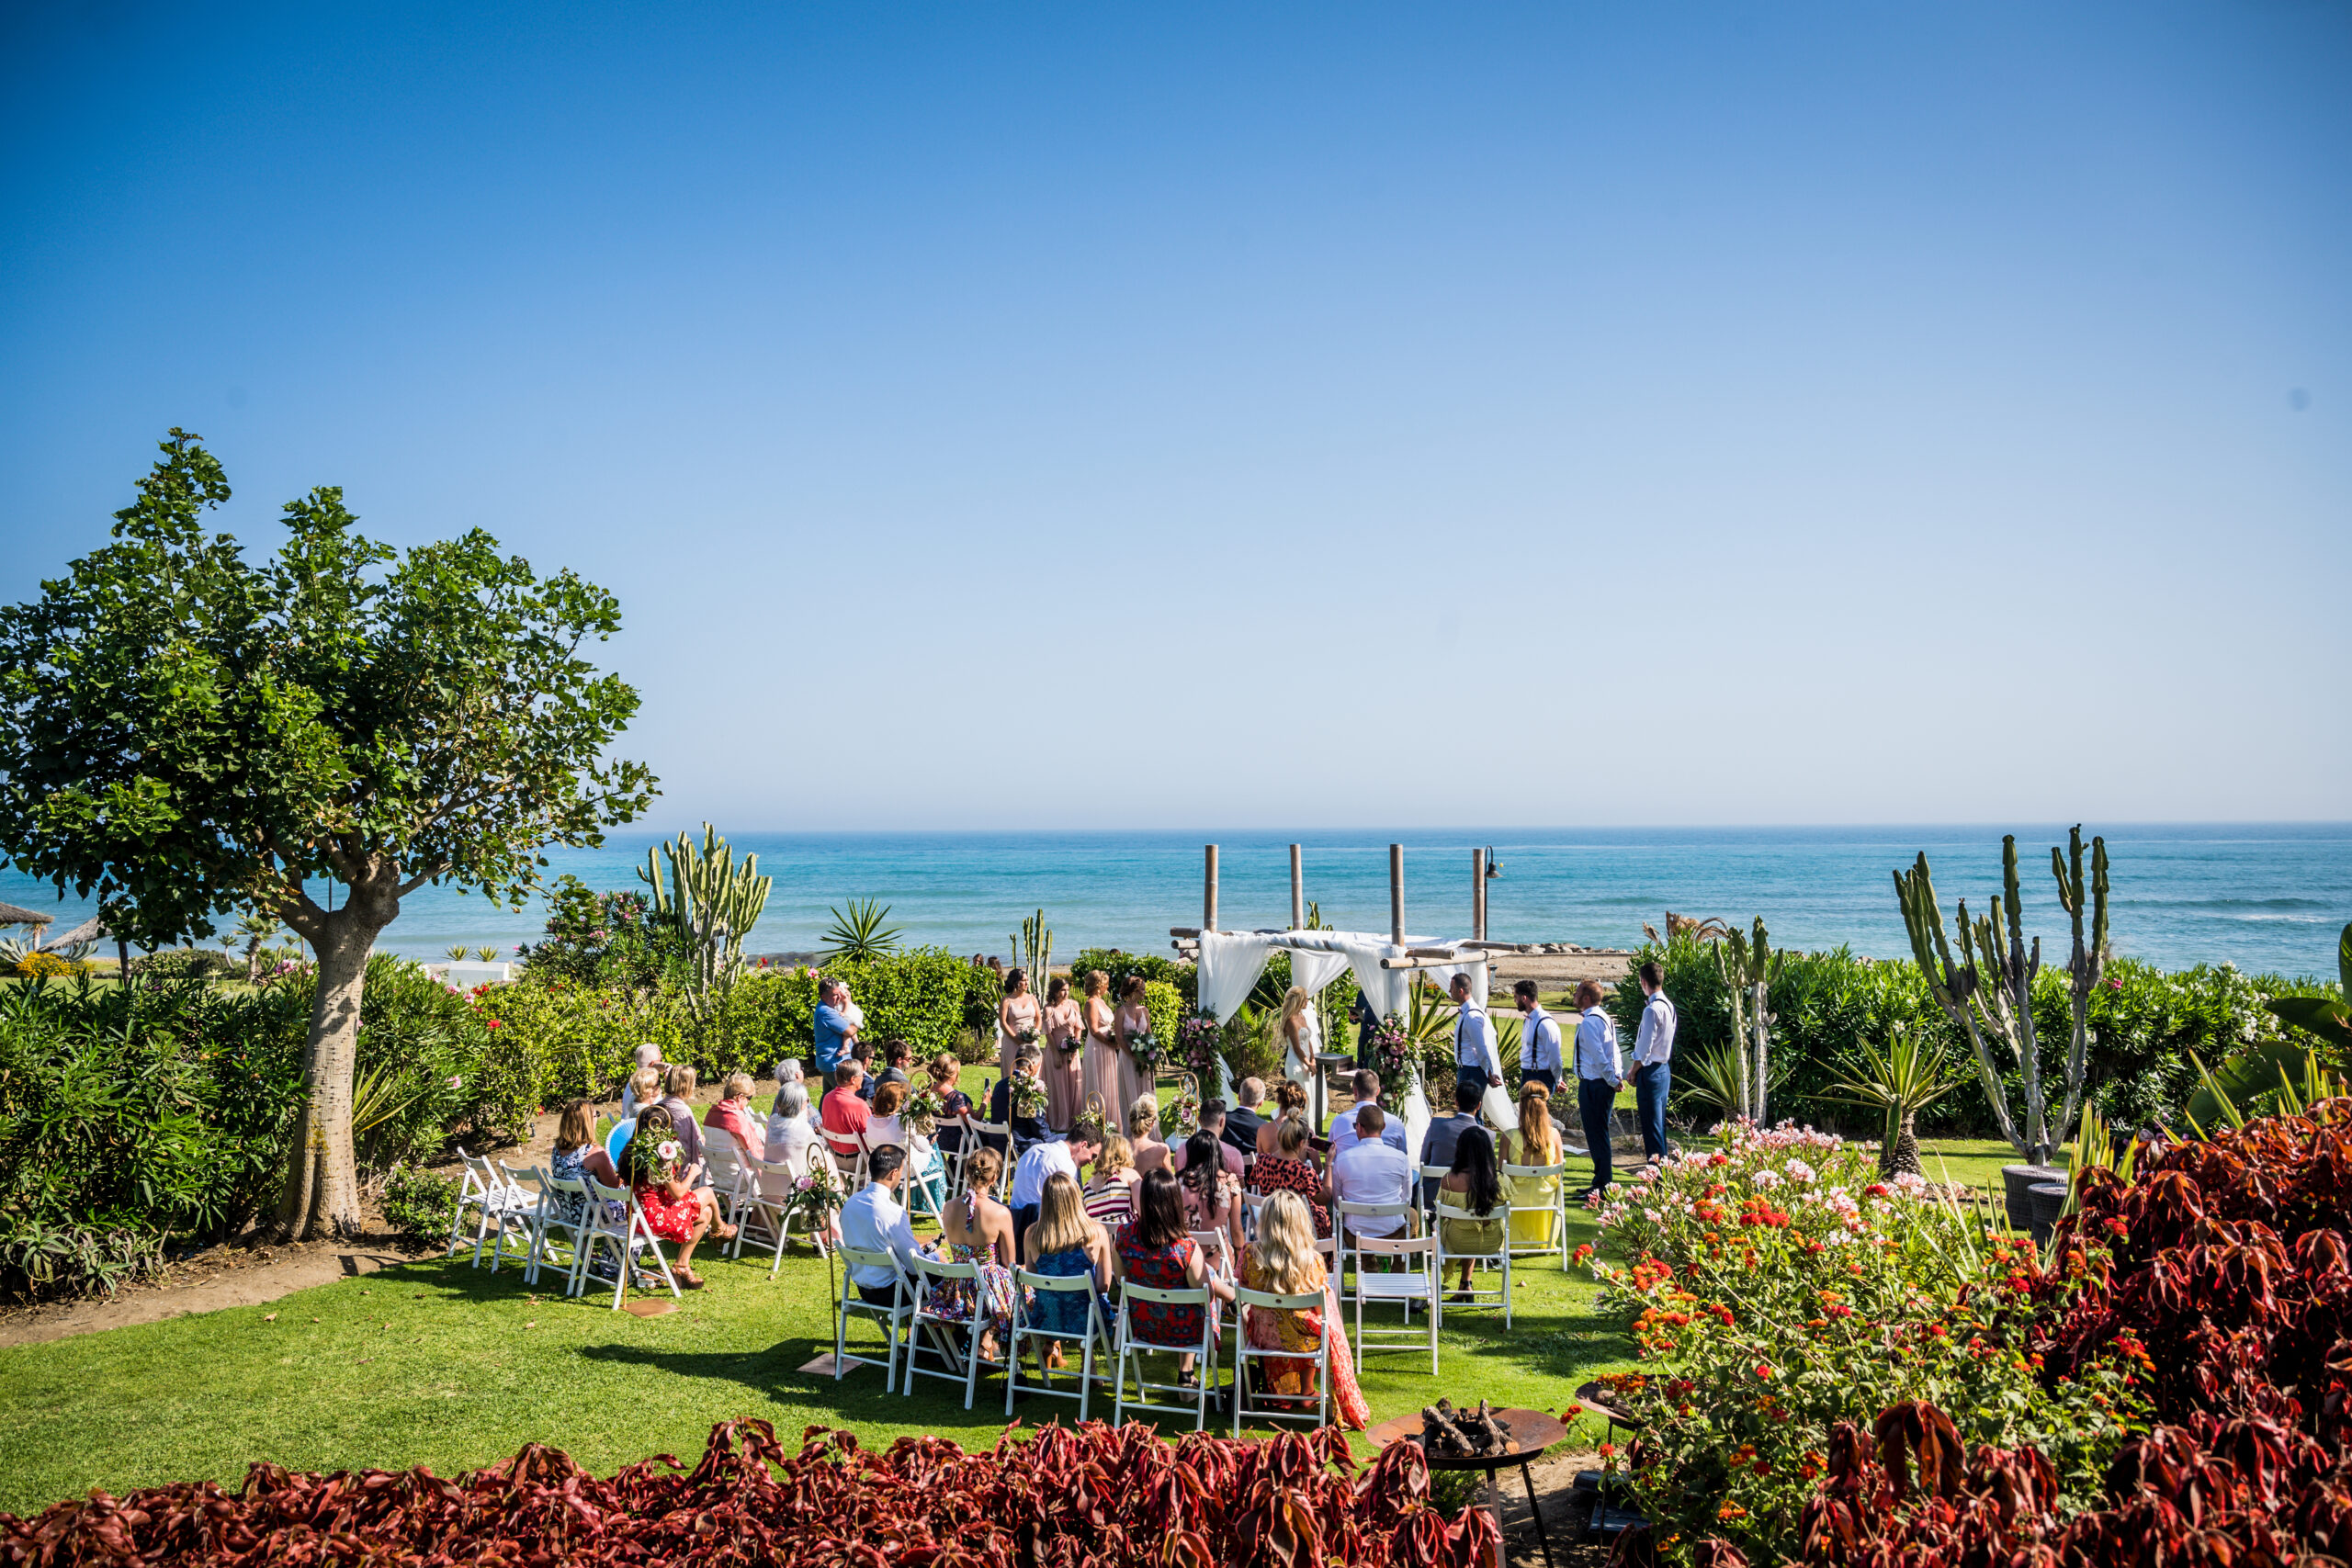 The wedding ceremony in the grounds of the beach club - Rebecca Davidson Photography